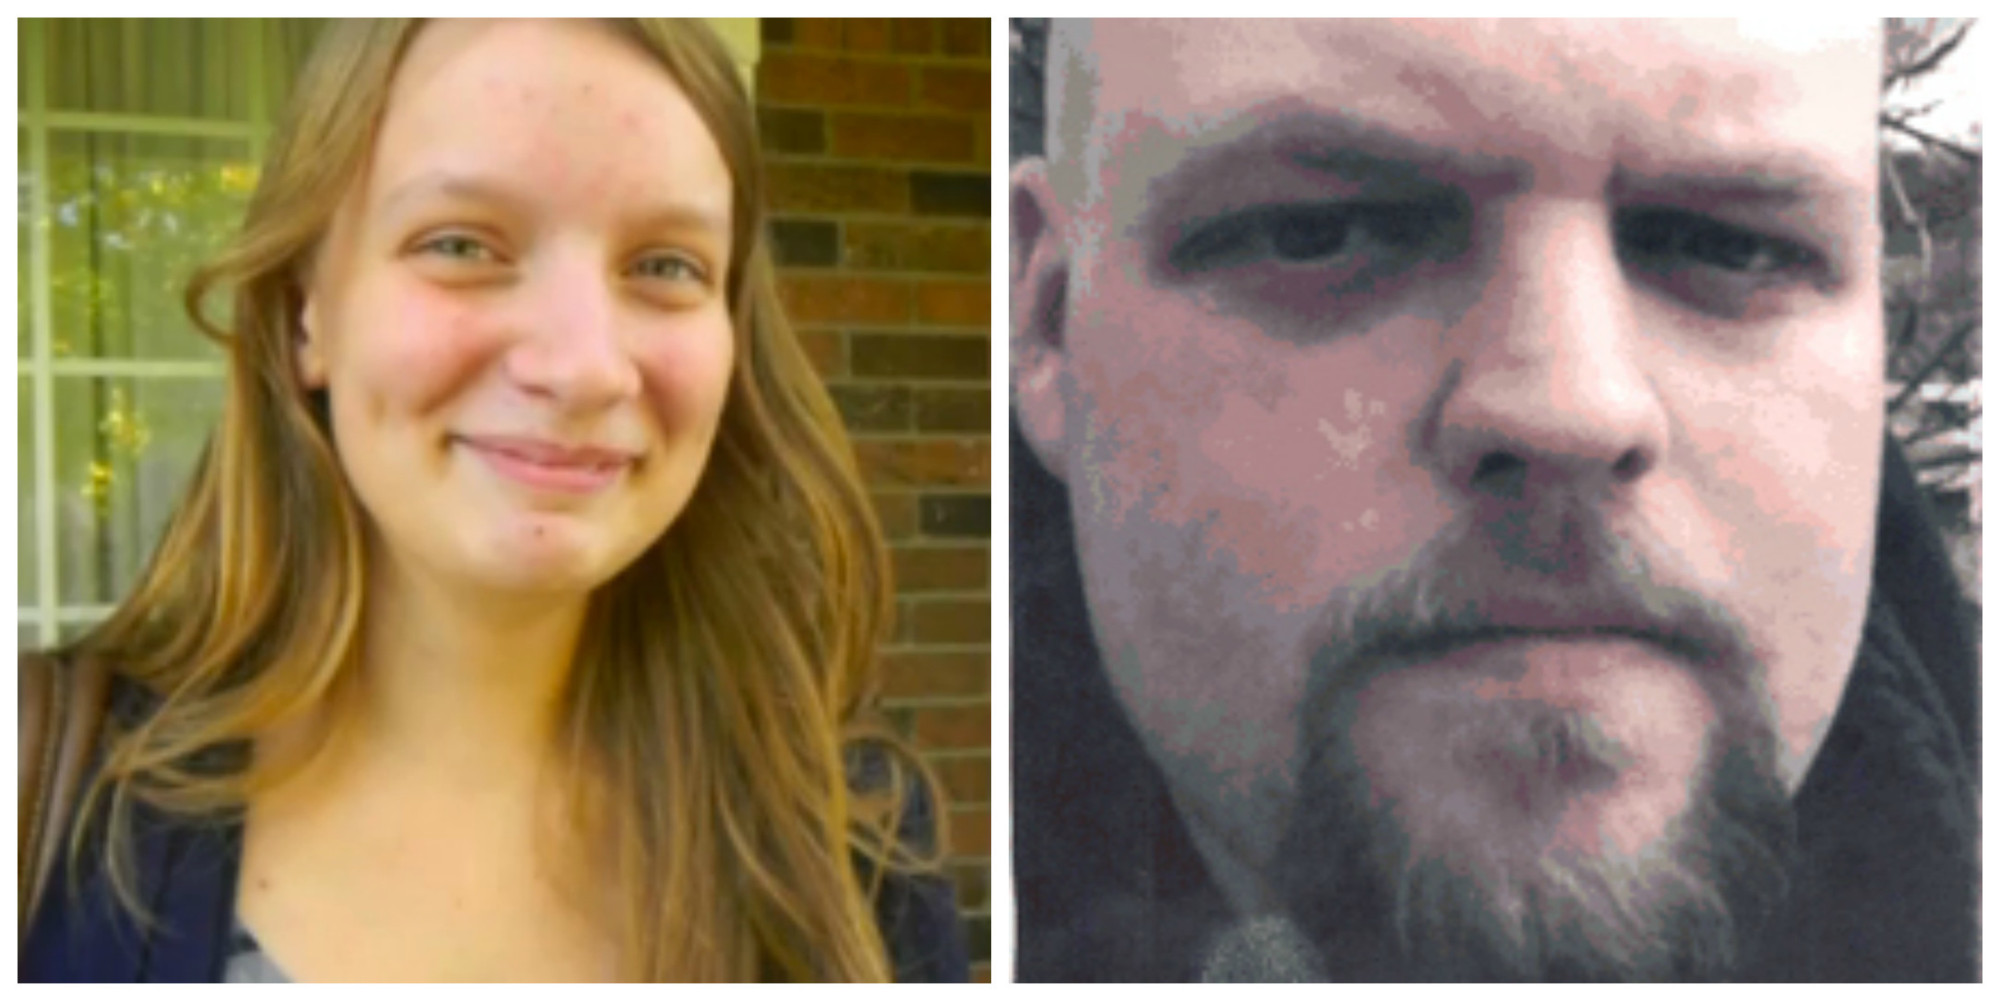 Michigan Girl, 15, Runs Away With 37-Year-Old Family